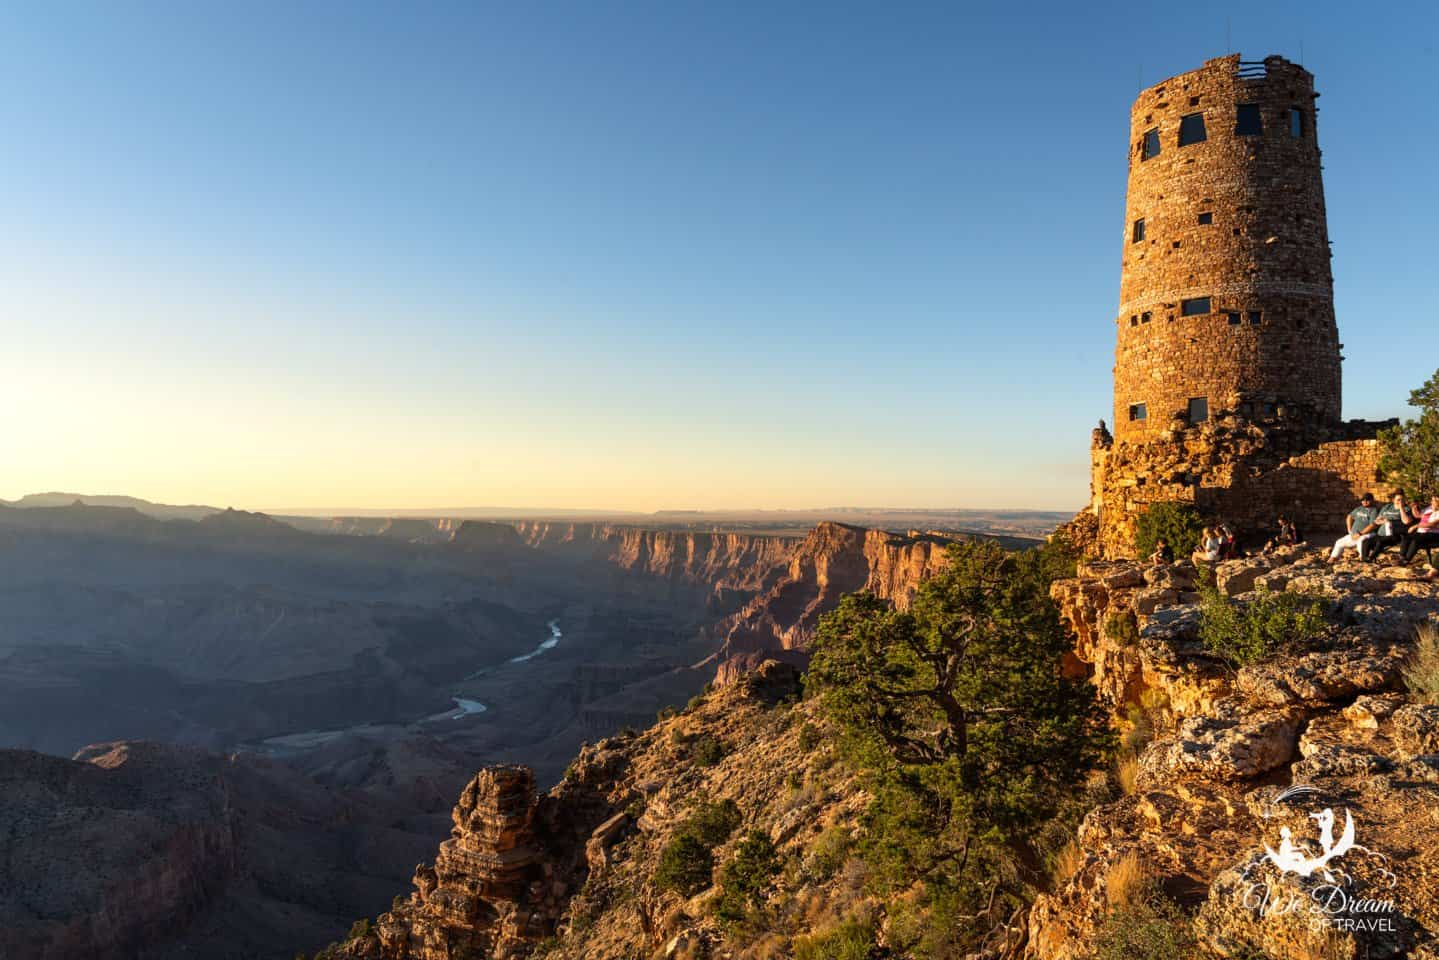 The Desert View Watchtower is a popular destination for sunset photography in Grand Canyon NP.